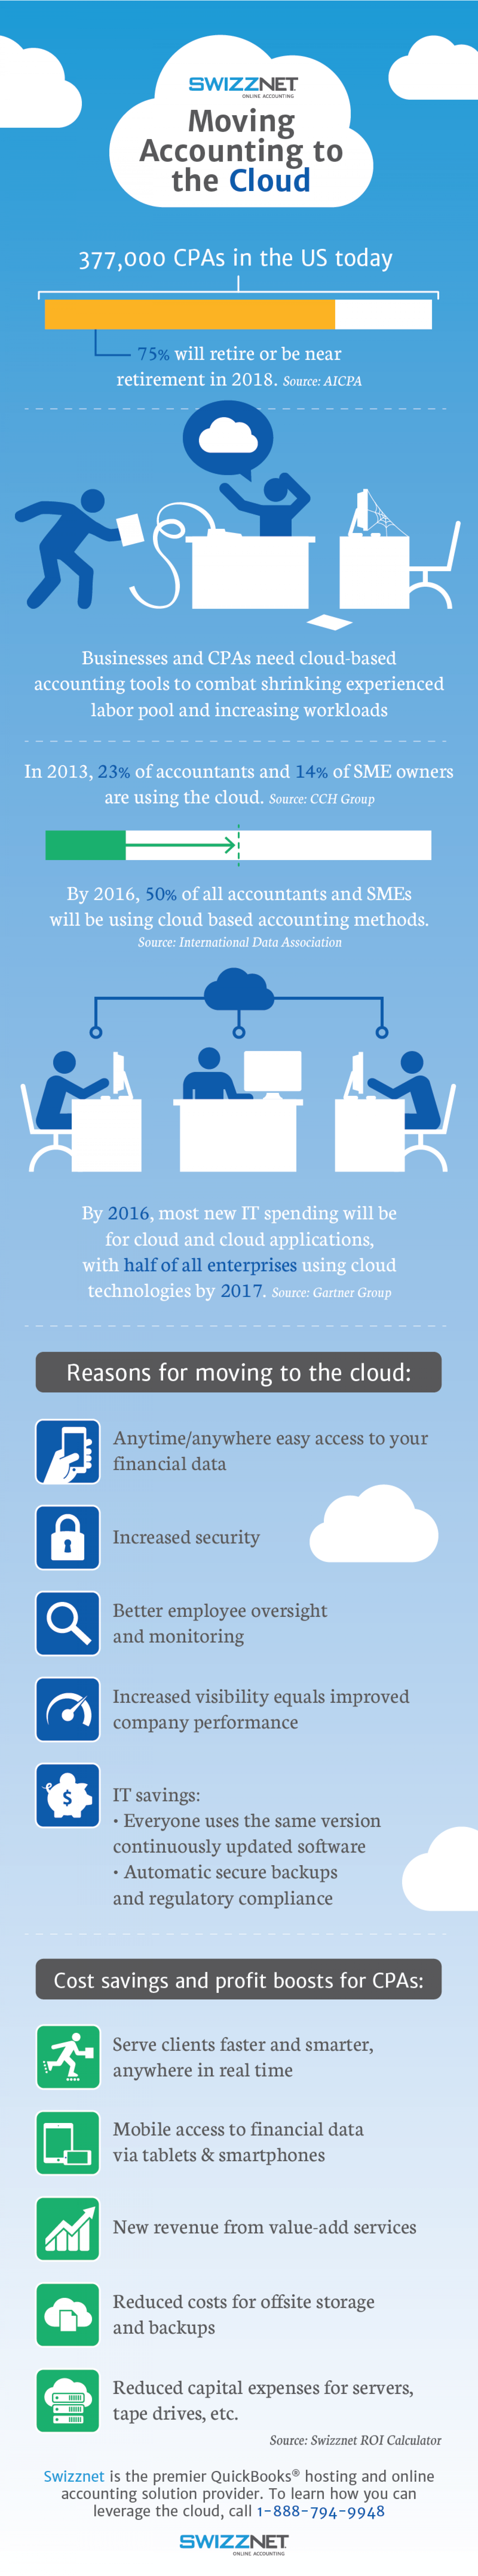 Moving Accounting to the Cloud Infographic